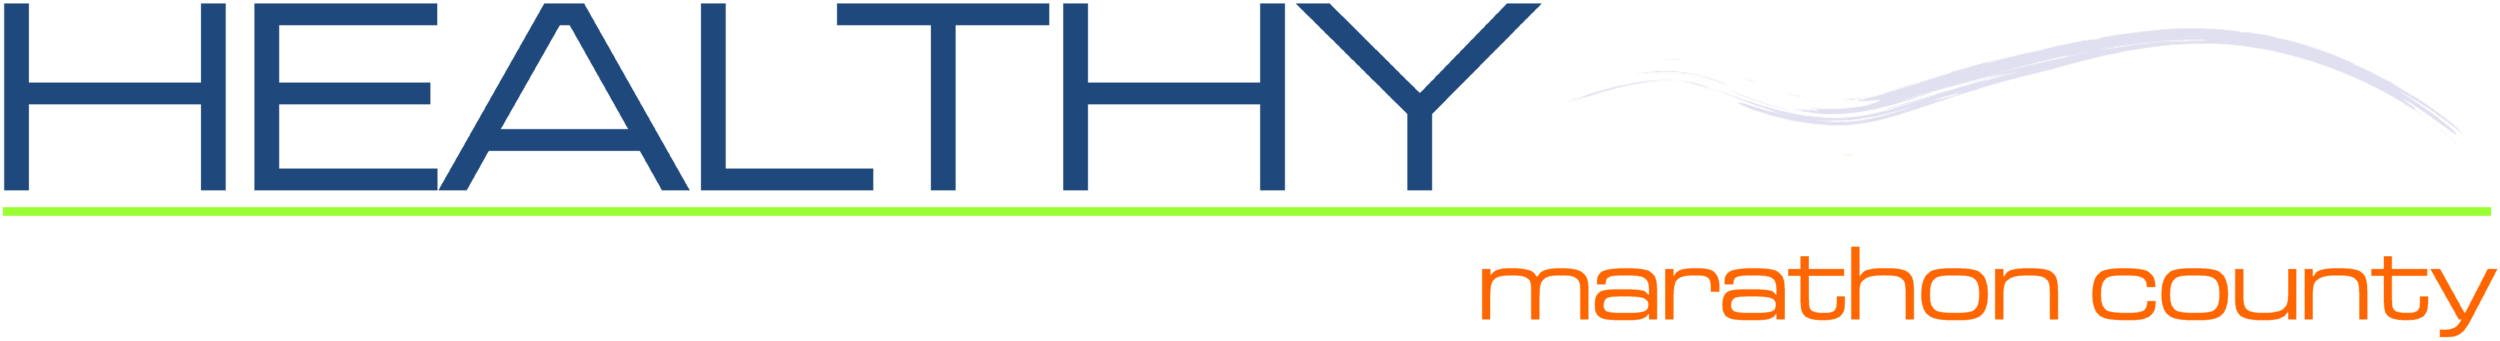 HMC Logo Transparency 2018-02-08.png